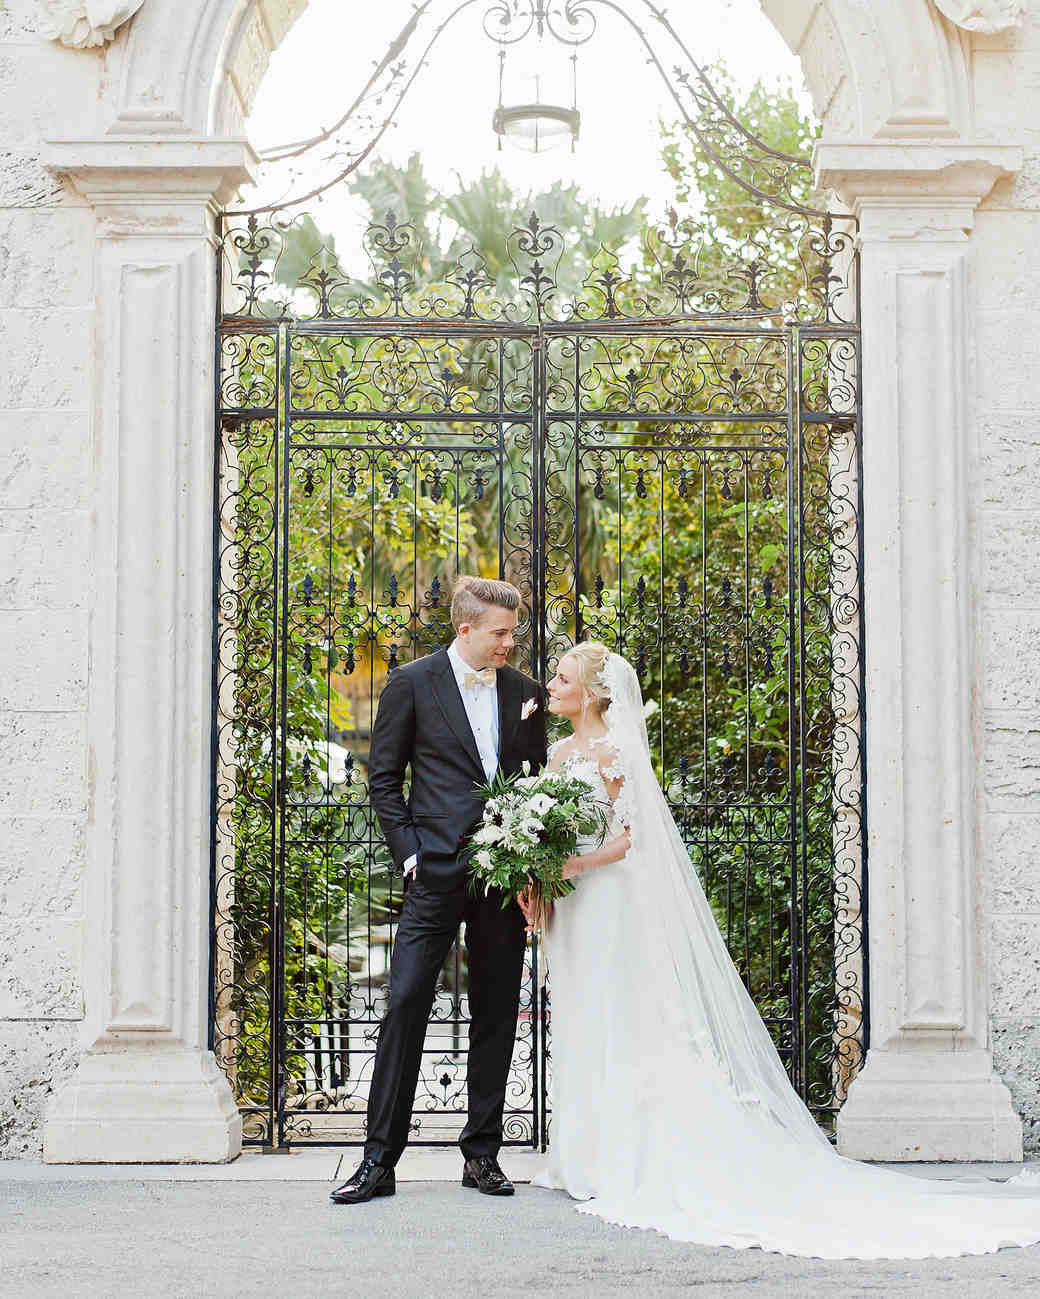 brette patrick wedding couple gate